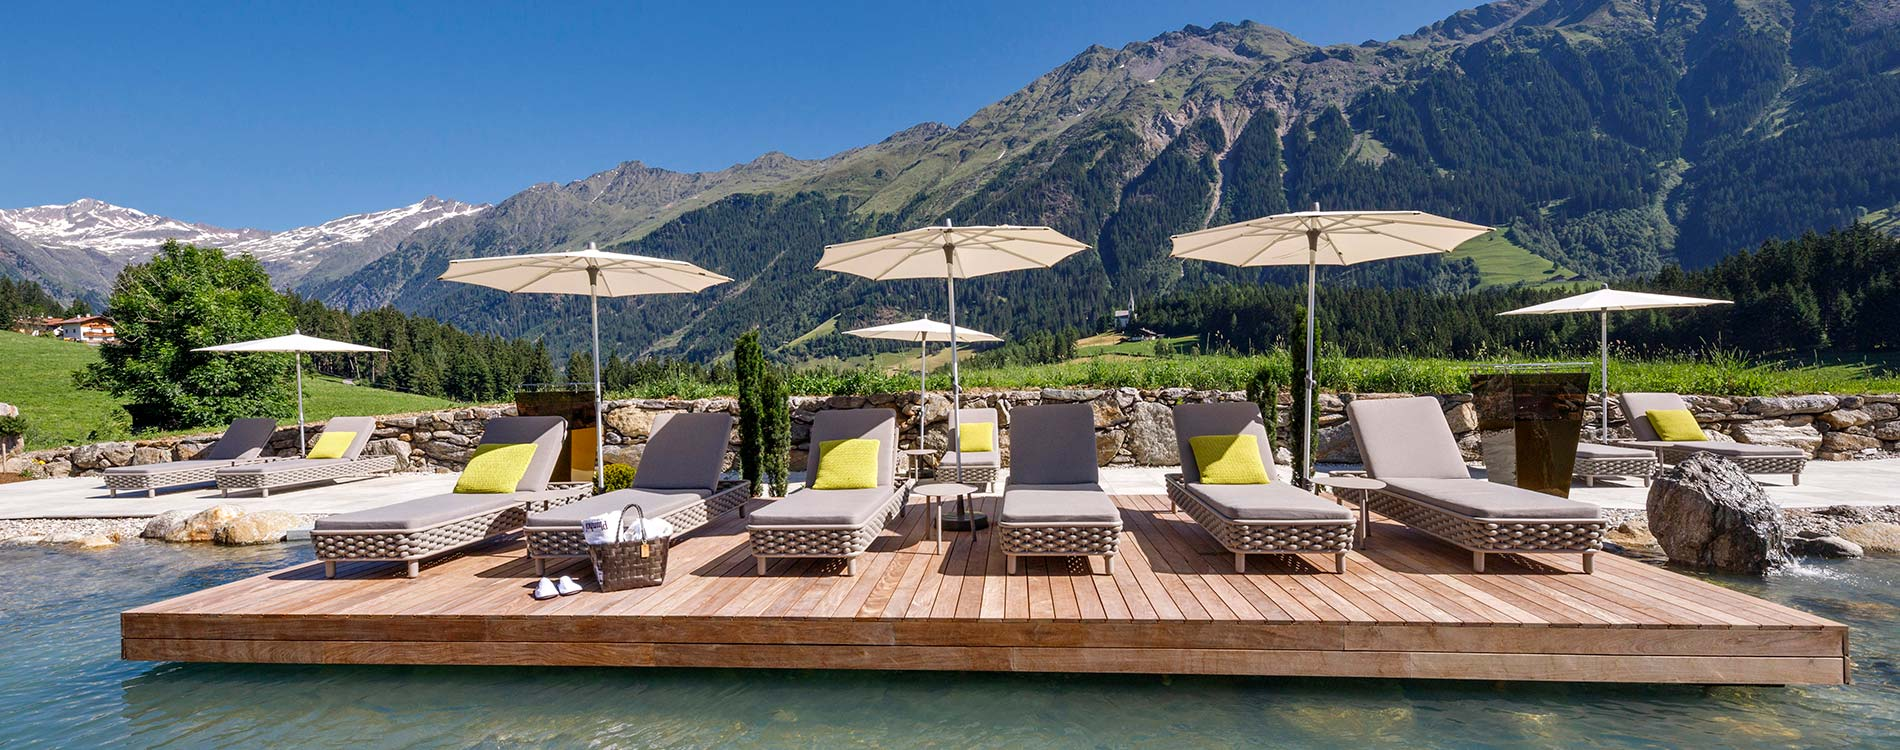 Niche escape in Italy Hotel Plunhof Ridnaun, South Tyrol Italy